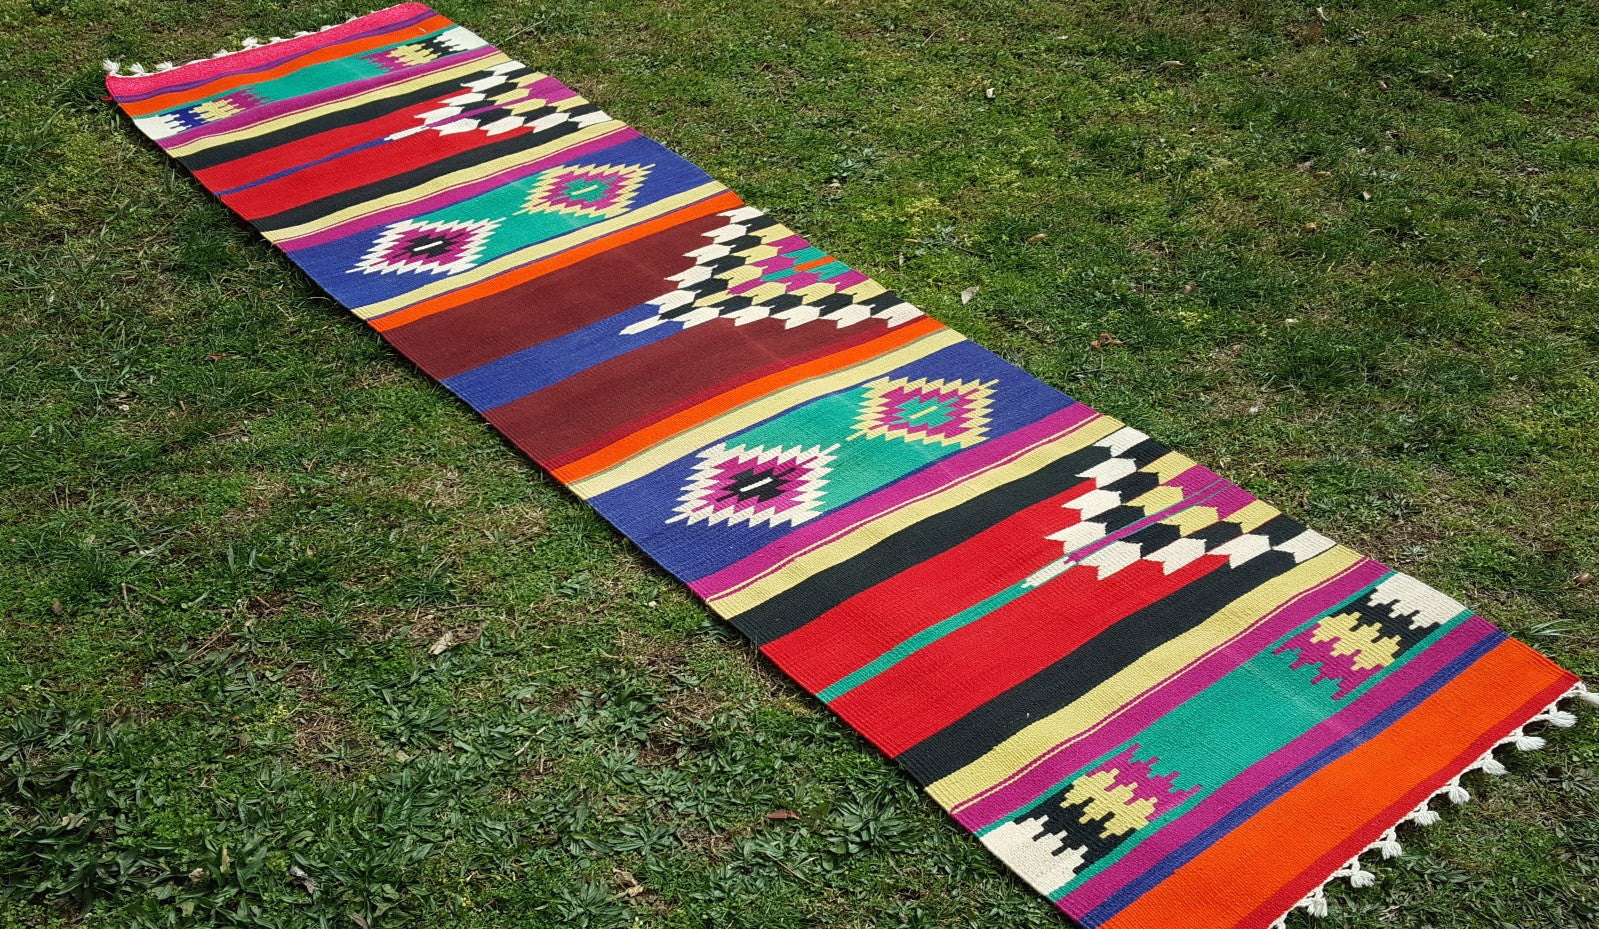 2,8 x 8,8 feet Turkish Runner Kilim Rug